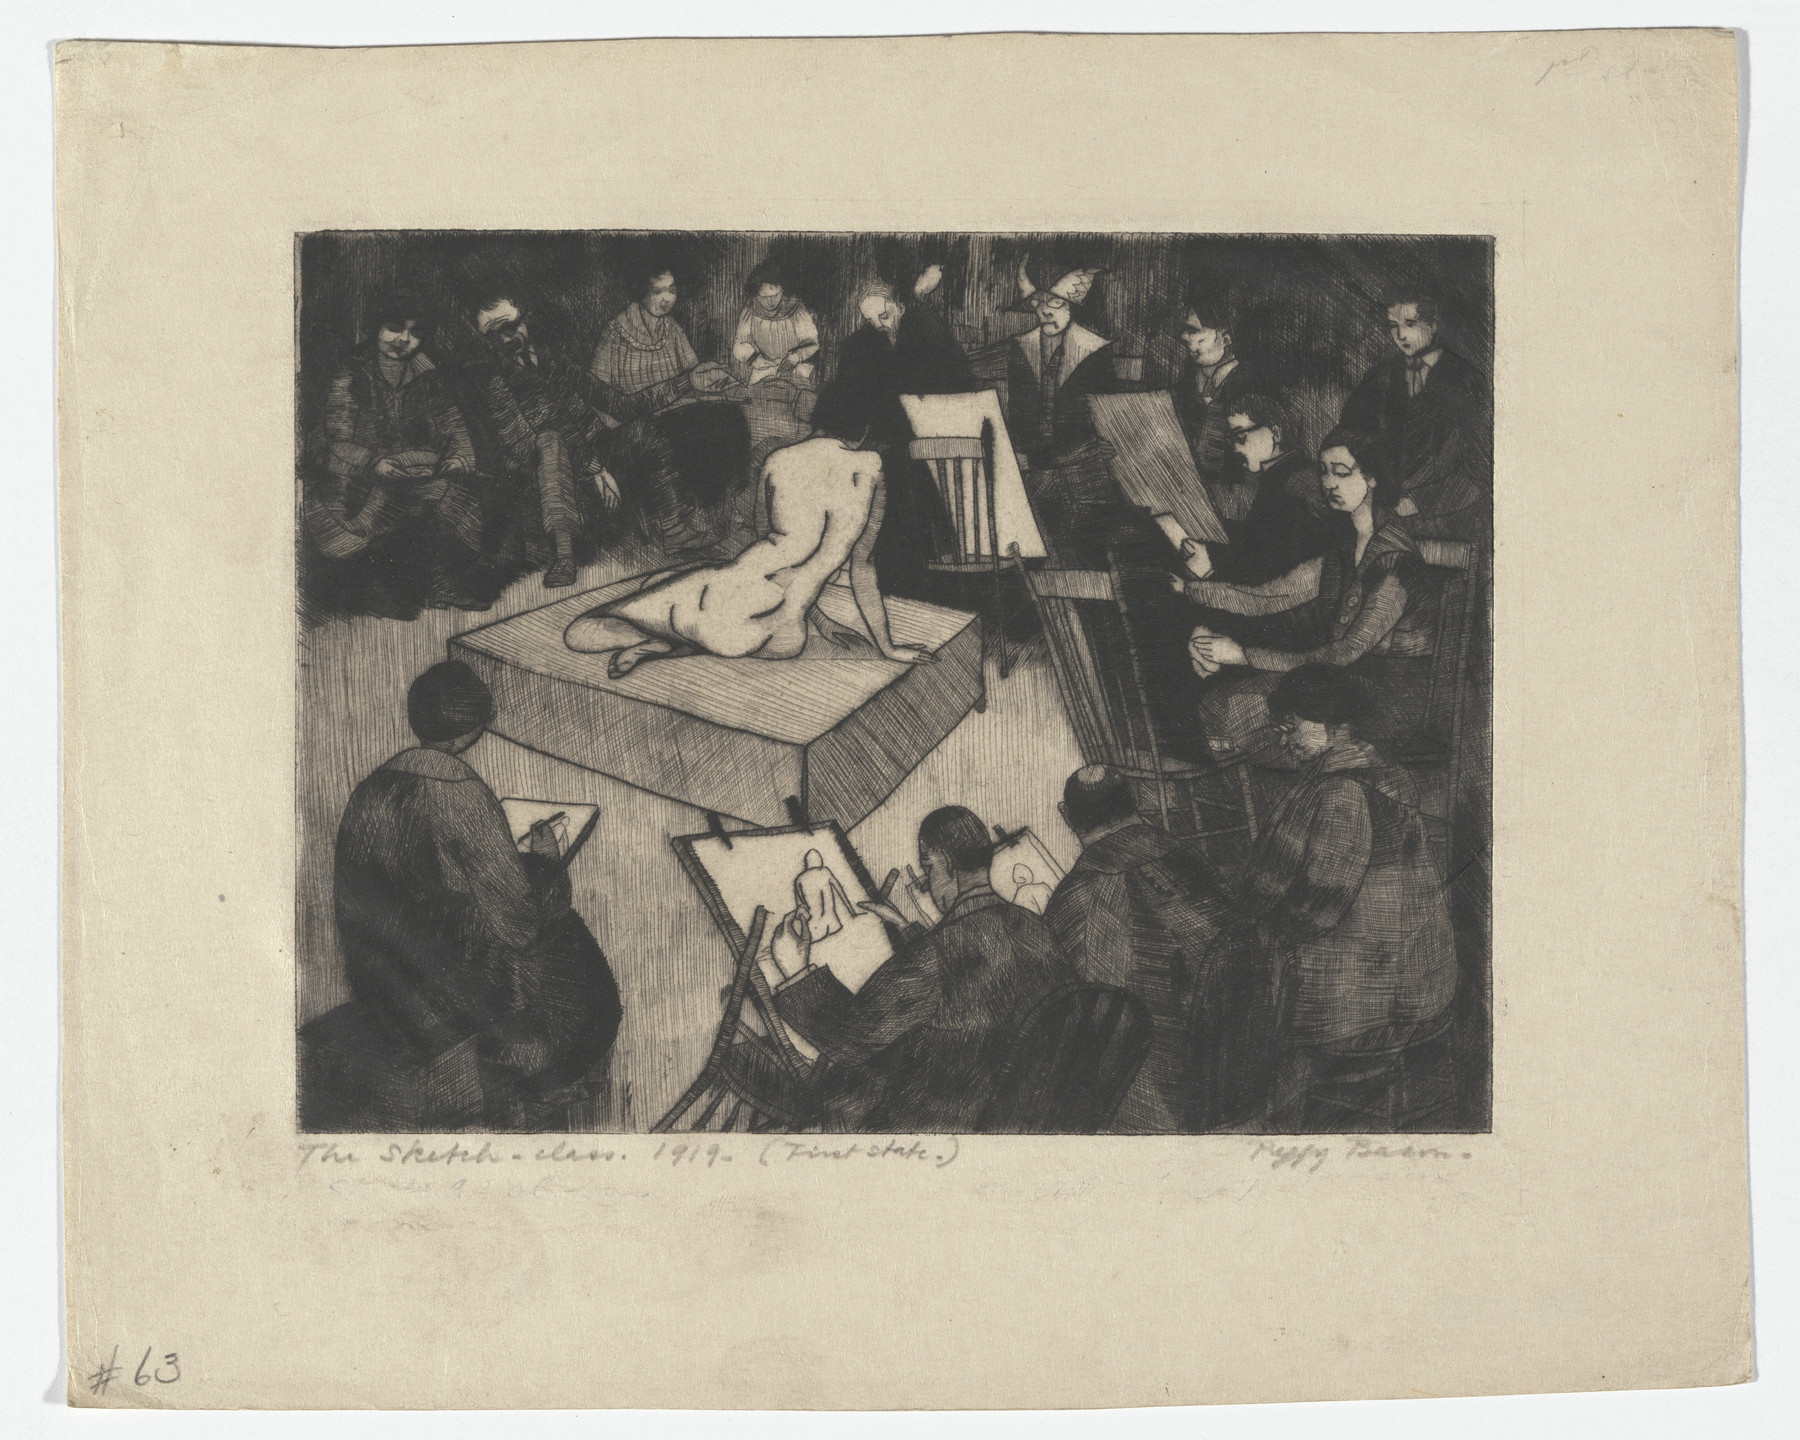 Peggy Bacon. The Sketch Class. 1919